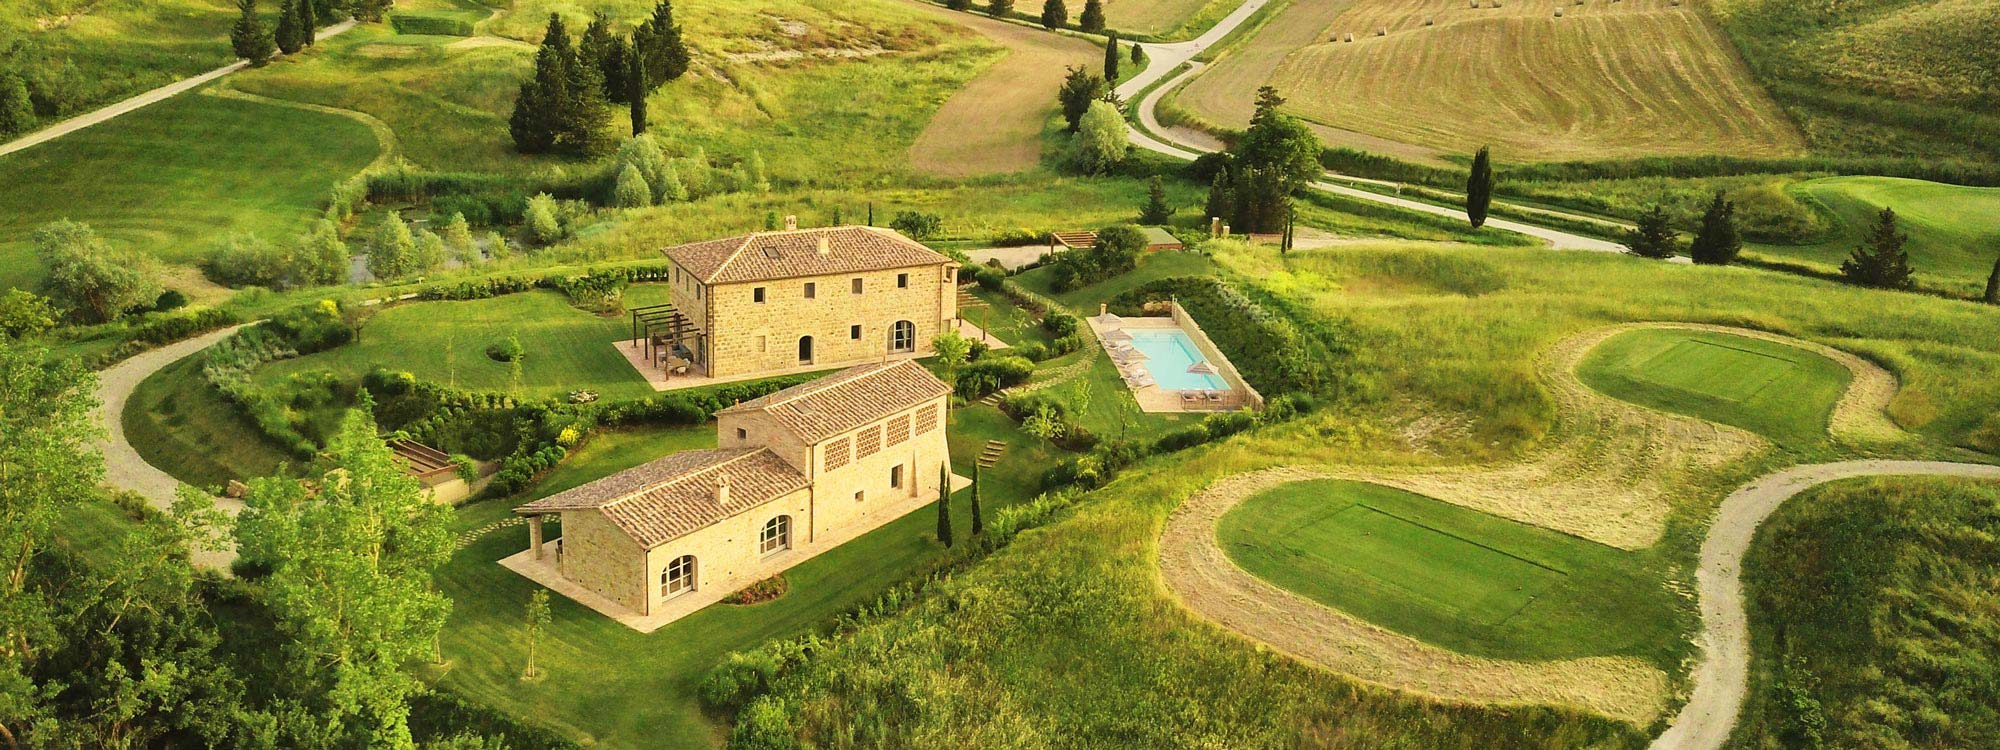 Restored farmhouse for sale in Castelfalfi, Tuscany